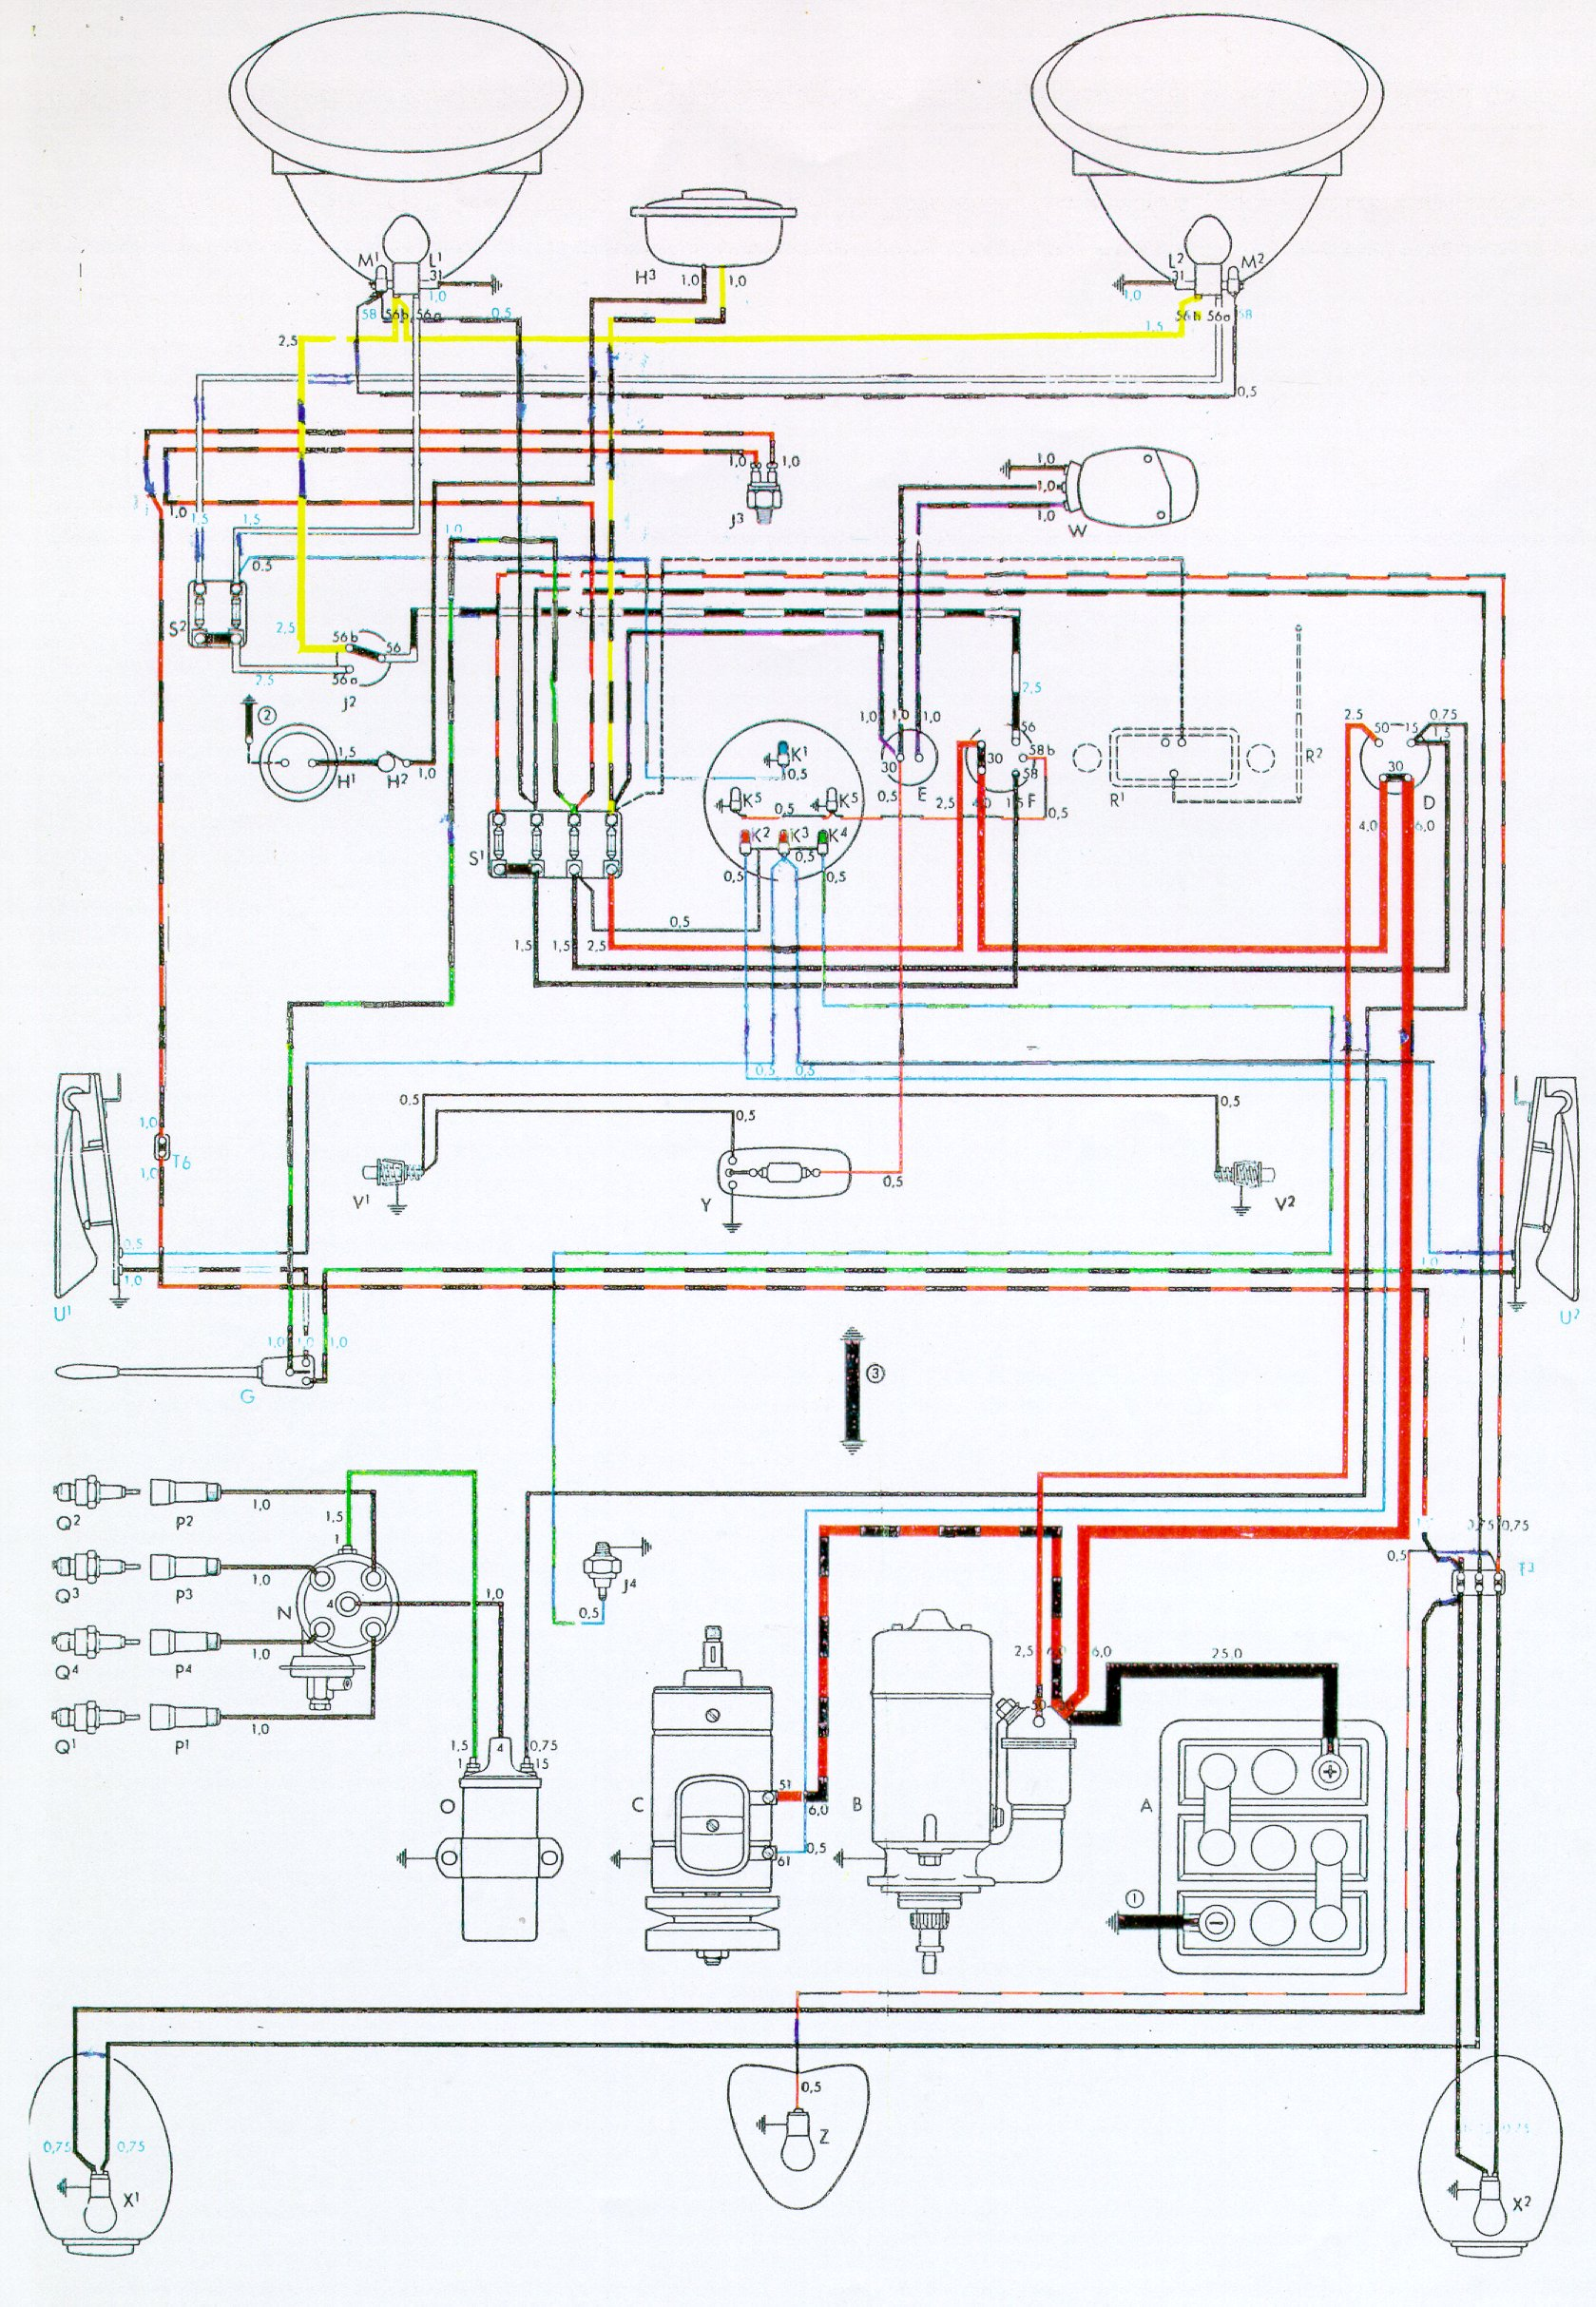 VintageBus.Com - VW Bus (and other) Wiring Diagrams on engine schematics, plumbing schematics, transmission schematics, transformer schematics, amplifier schematics, wire schematics, ford diagrams schematics, circuit schematics, electronics schematics, ignition schematics, generator schematics, piping schematics, ecu schematics, ductwork schematics, motor schematics, computer schematics, electrical schematics, tube amp schematics, engineering schematics, design schematics,